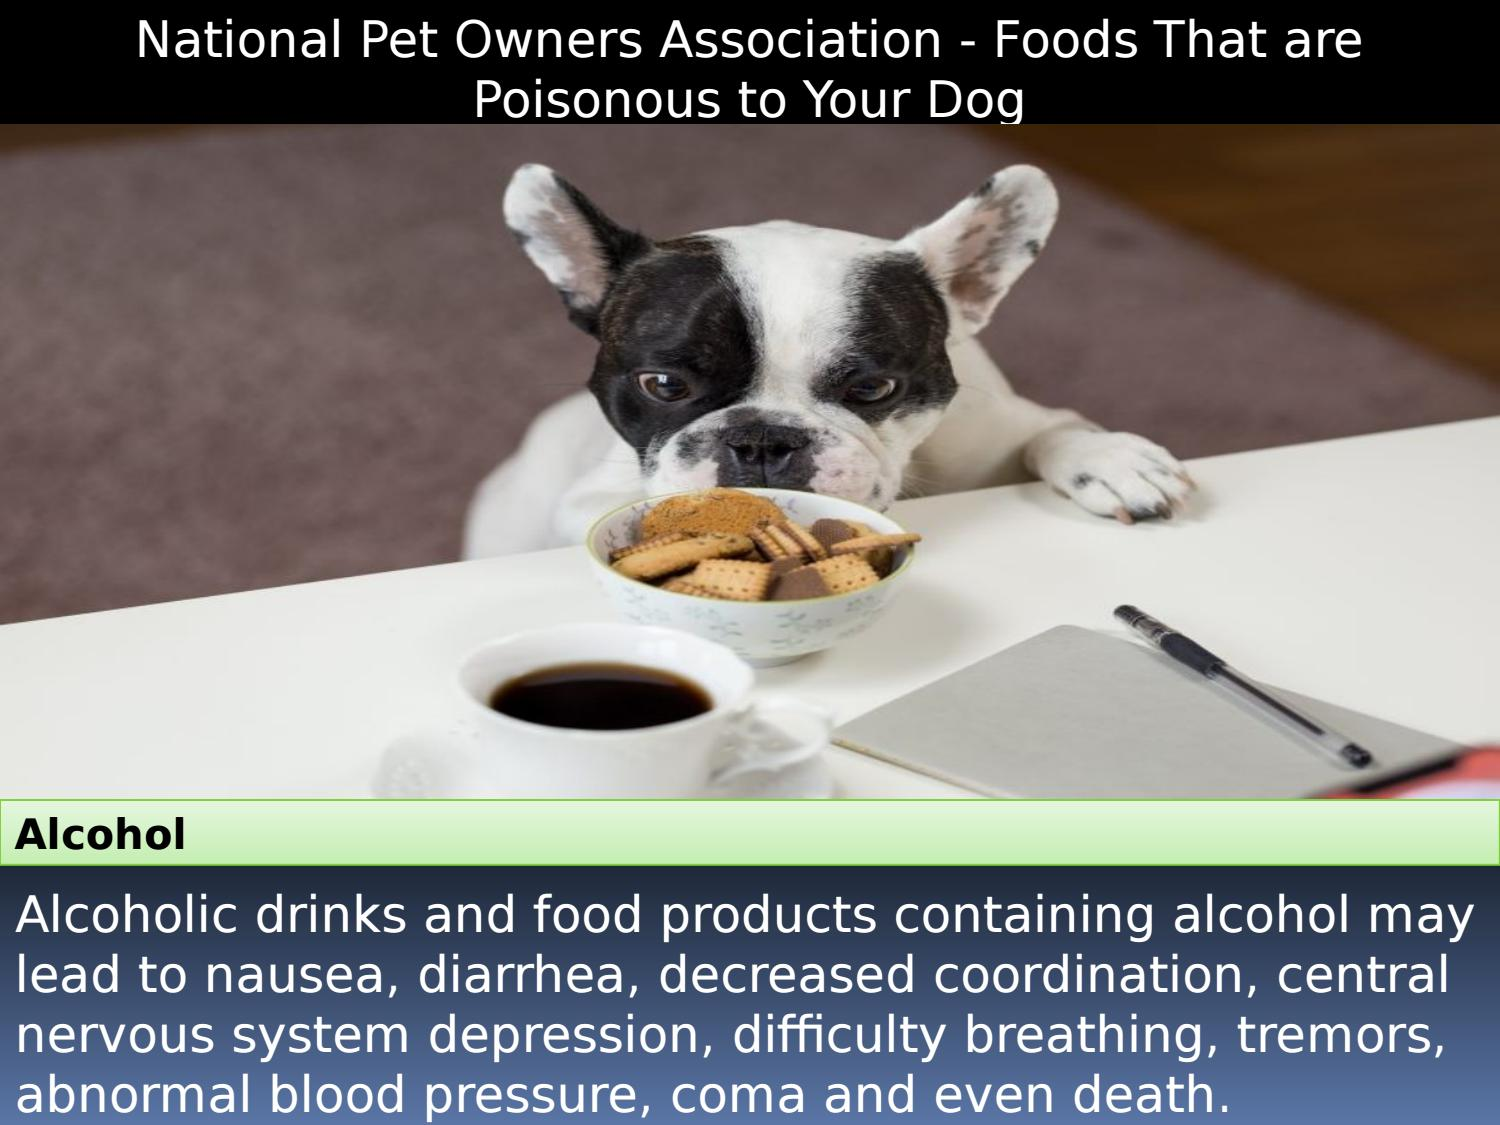 National Pet Owners Association - Foods That are Poisonous